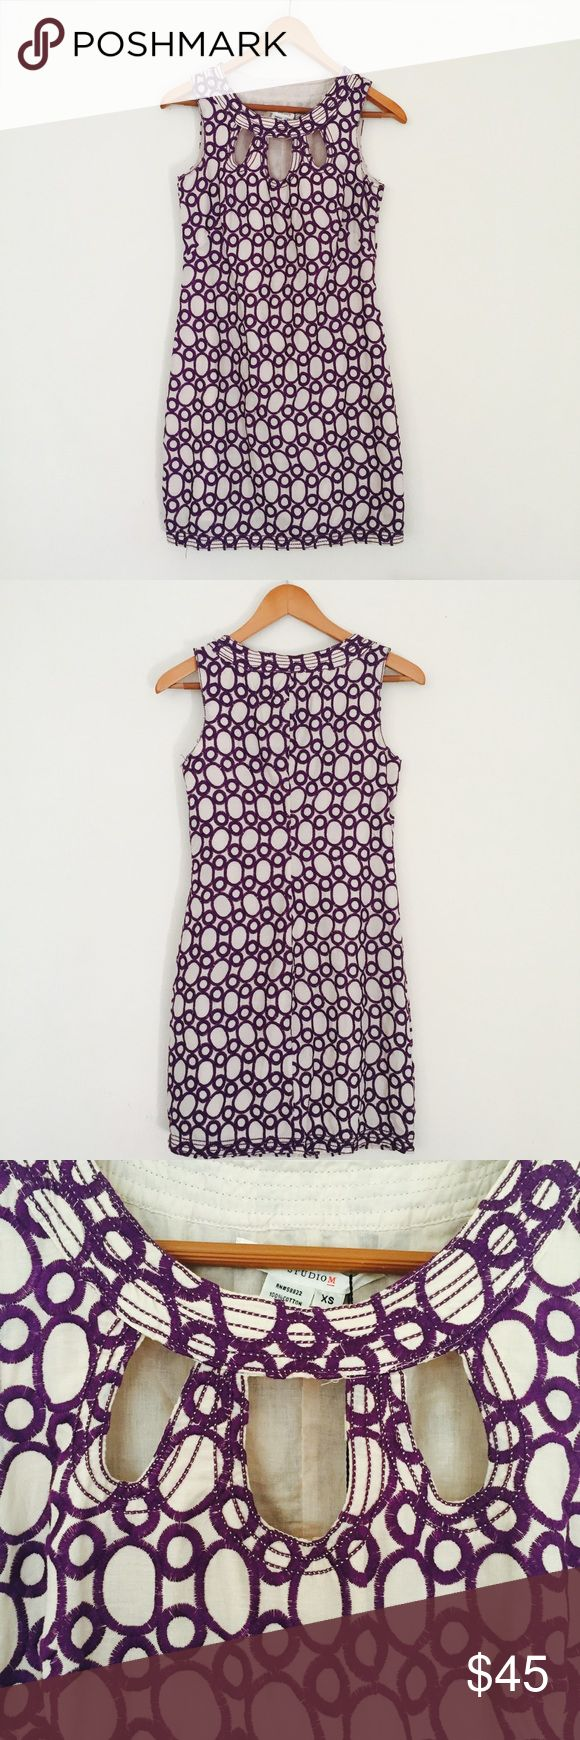 """Studio M Size XS Geometrical Embroidered Dress Beautiful cocktail dress! A subtle off white color with a purple embroidered pattern. A cut out pattern around the neck adds a modern edge to this classic style. Wear it with your favorite pair of Steve Madden heels and J. Crew statement necklace for an elegant and chic look. Perfect for a girls night out dinner or any formal event.   Measurements:  Length- 32.5"""" Pit to pit- 16.25"""" Shoulder-12.5""""  Material: 100% Cotton Studio M Dresses Mini"""